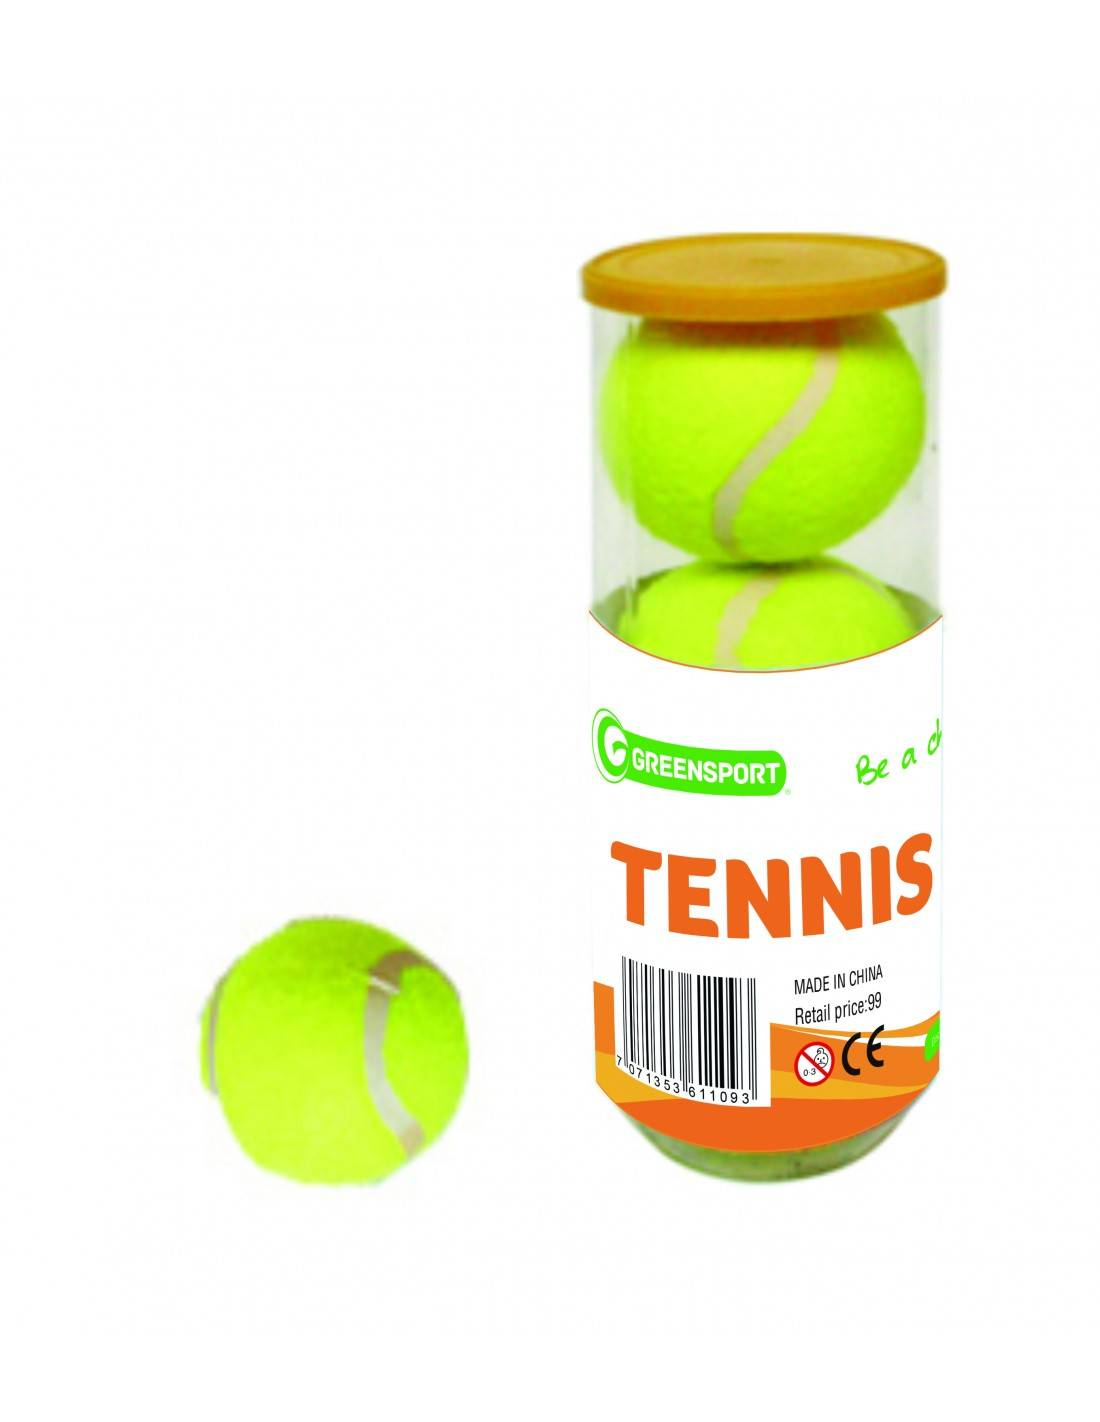 Lmnts Greensport Tennisballer 3 Stk